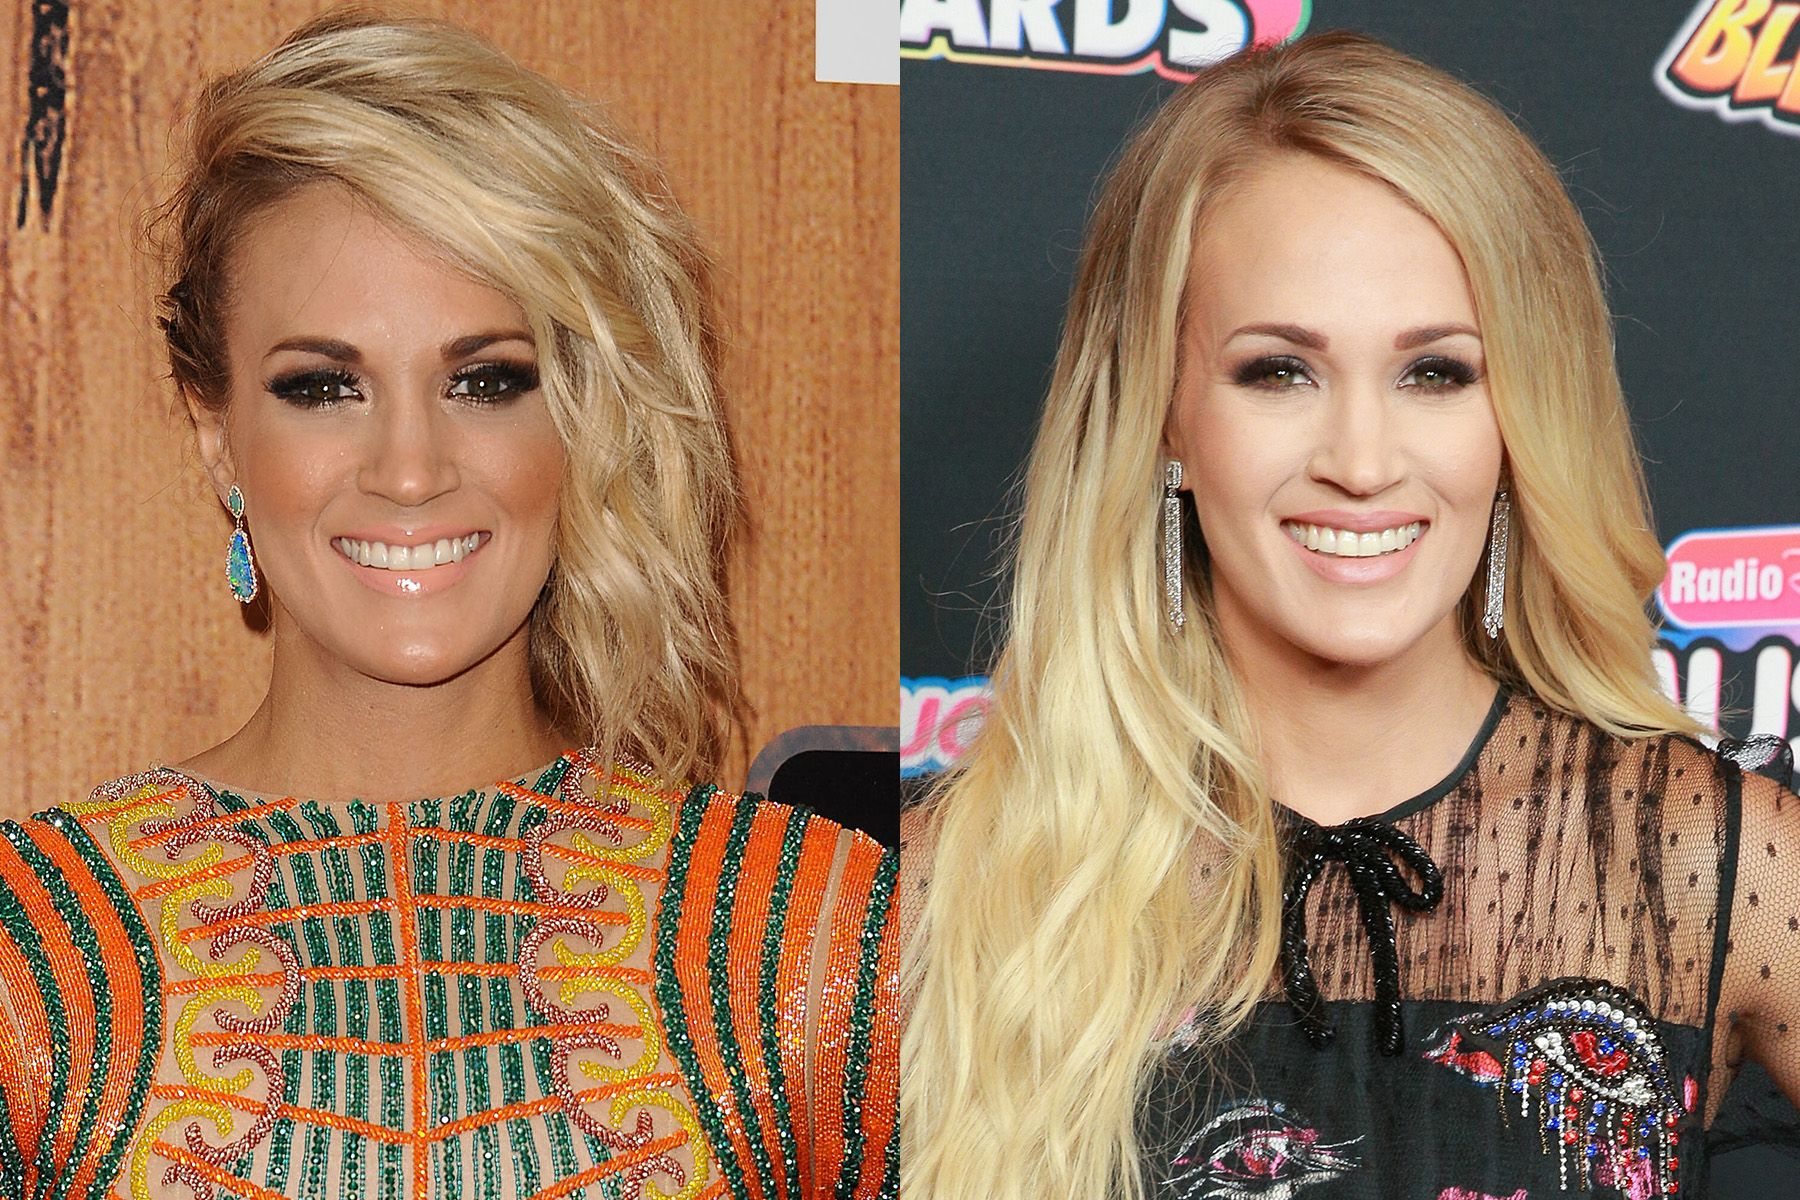 Carrie Underwood The American Idol alum and country music superstar still loves her blonde hair and smokey eyes, but she's noticeably toned down her tanning over the years, which we thinks makes her look young and fresh-faced.